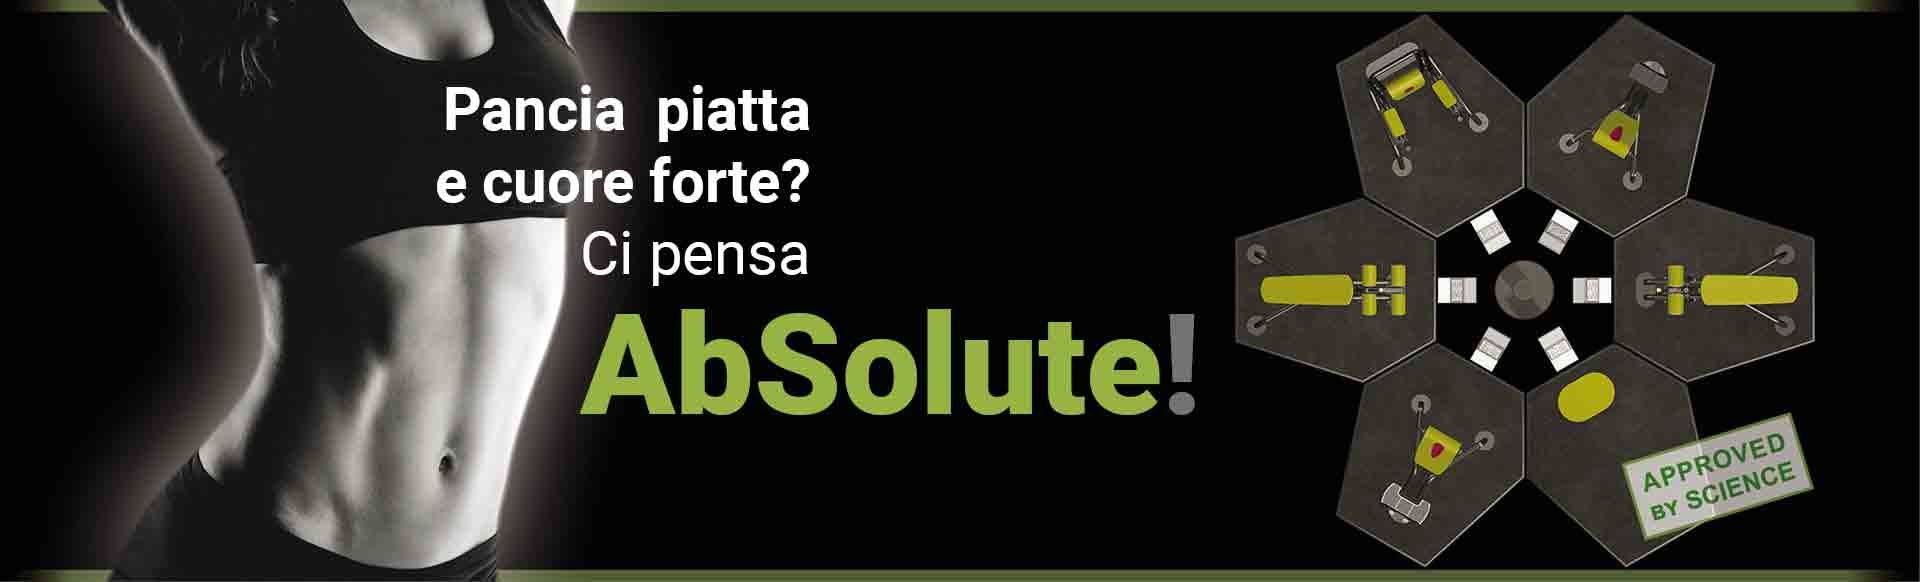 cover_absolute-modificato